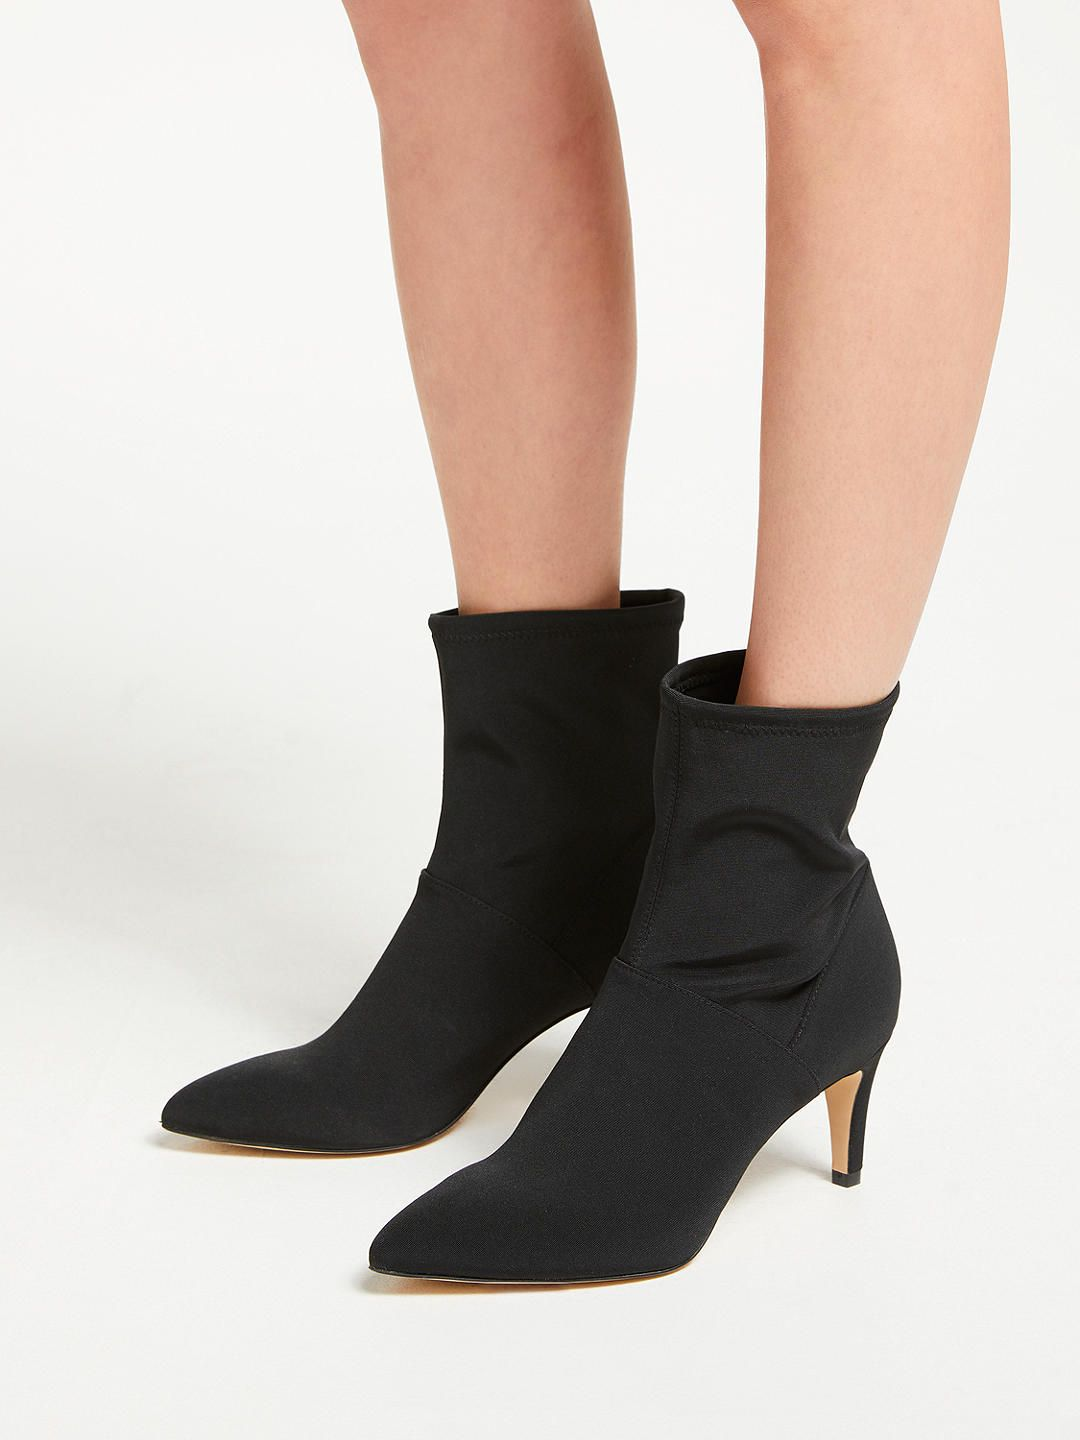 d3cc468d6f6 BuyBoden Stretch Stiletto Heel Ankle Boots